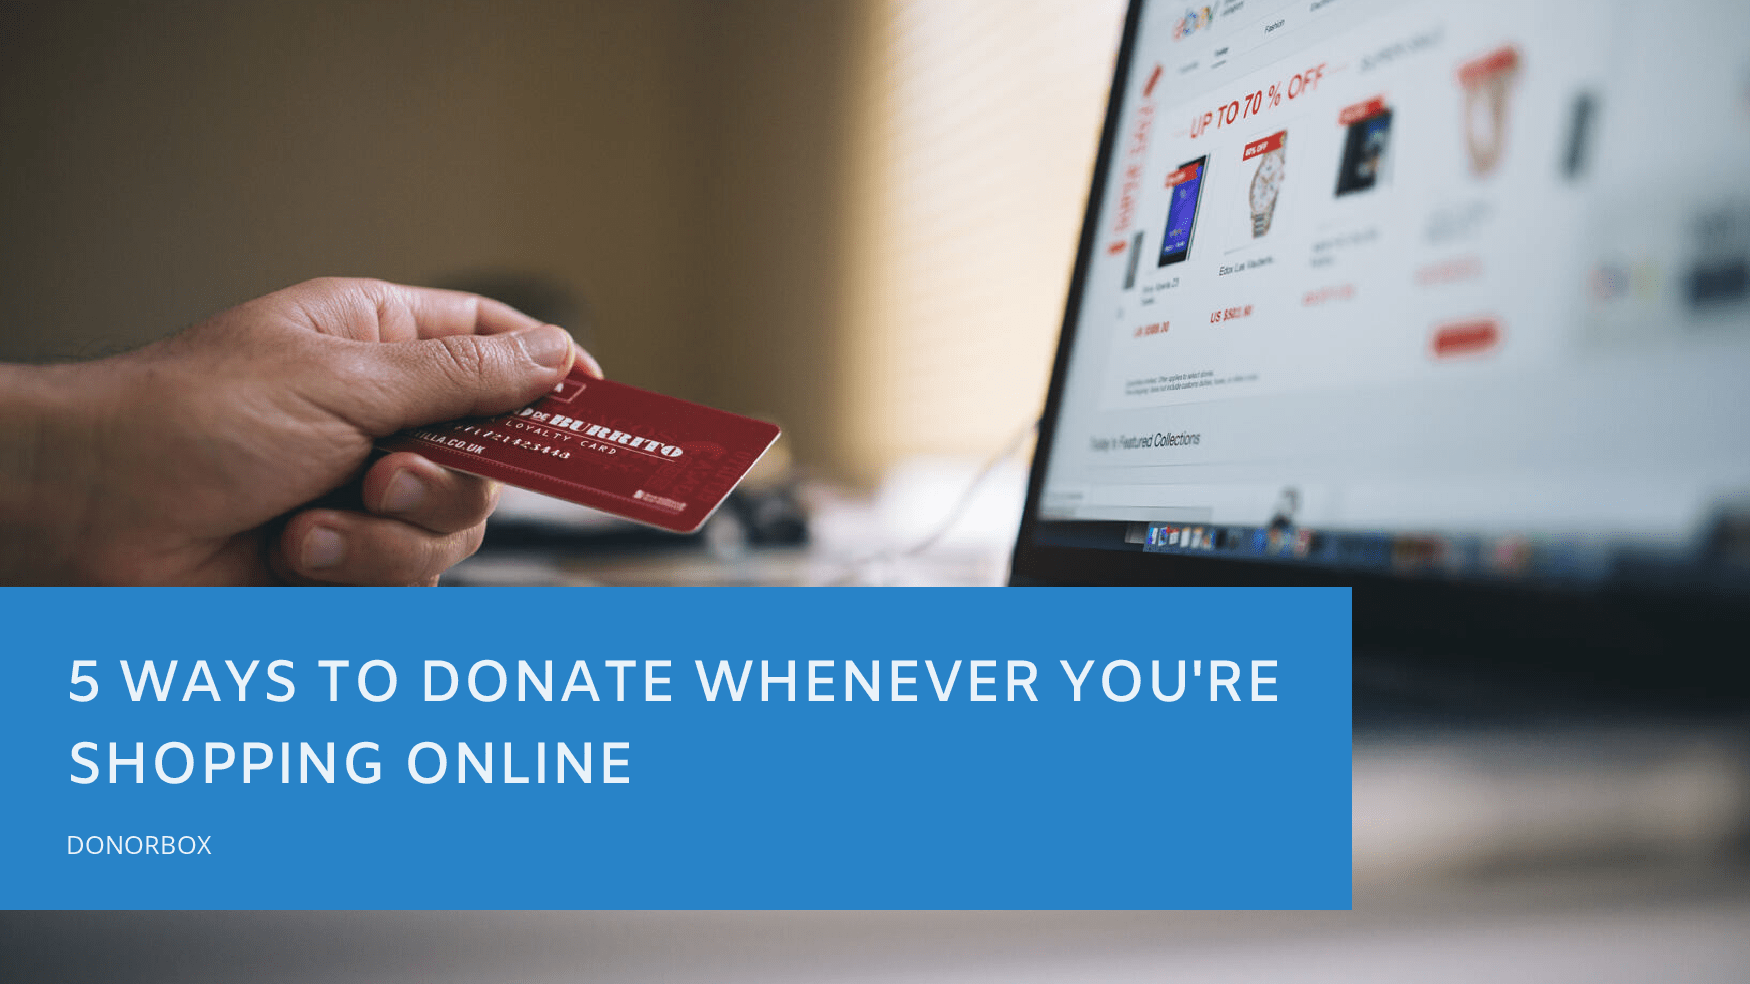 5 Ways to Donate Whenever You're Shopping Online